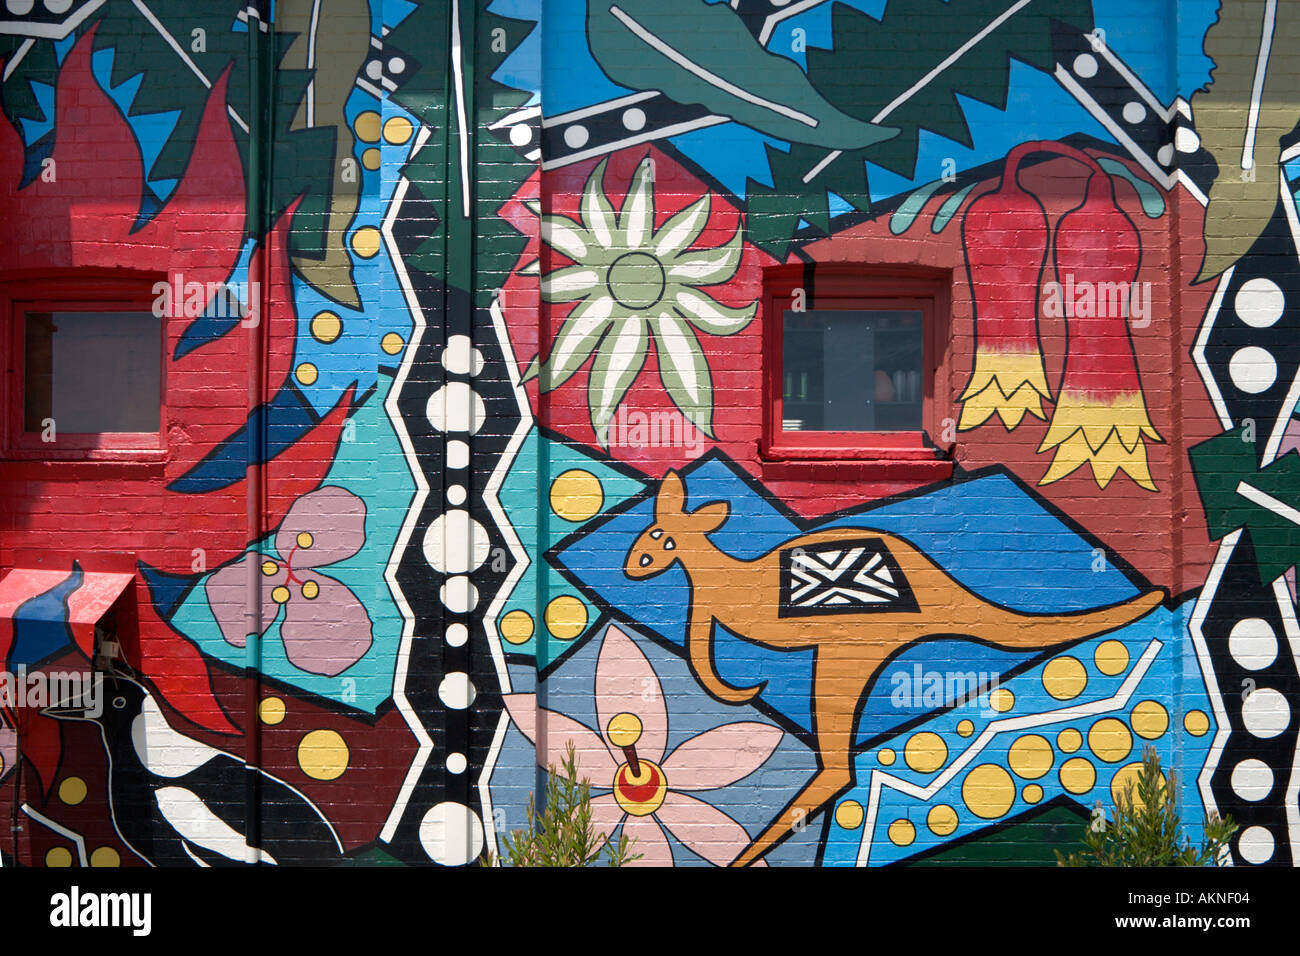 Mural on Wall of Victory Theatre, Blackheath, Blue Mountains, New South Wales, Australia - Stock Image